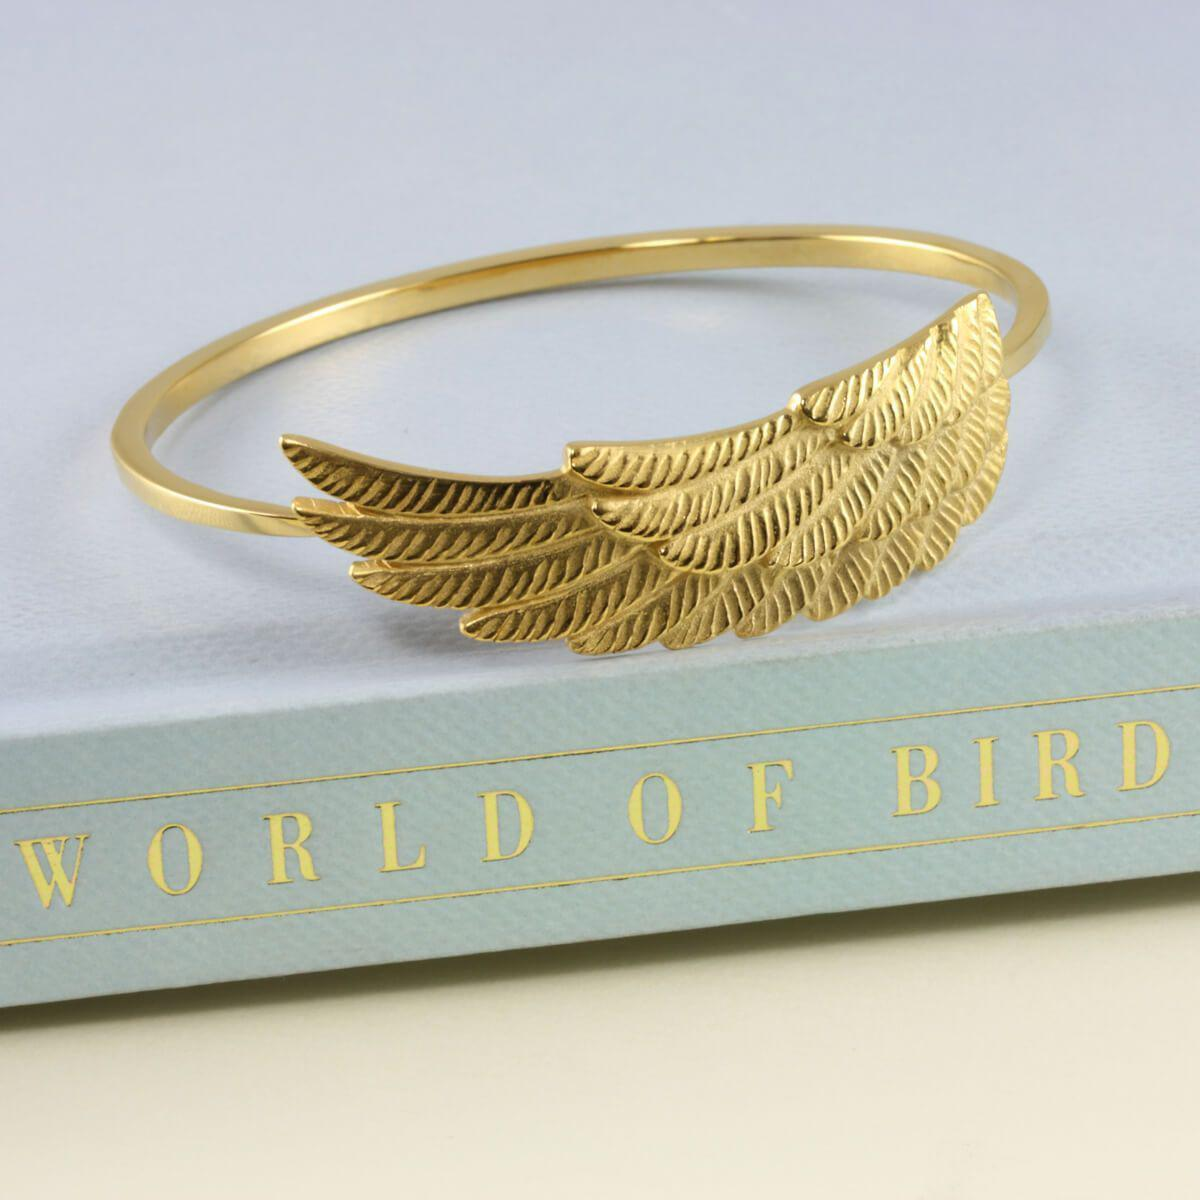 Jana Reinhardt Gold Plated Silver Wing Bangle - 19cm Medium D2bYAgOKBz